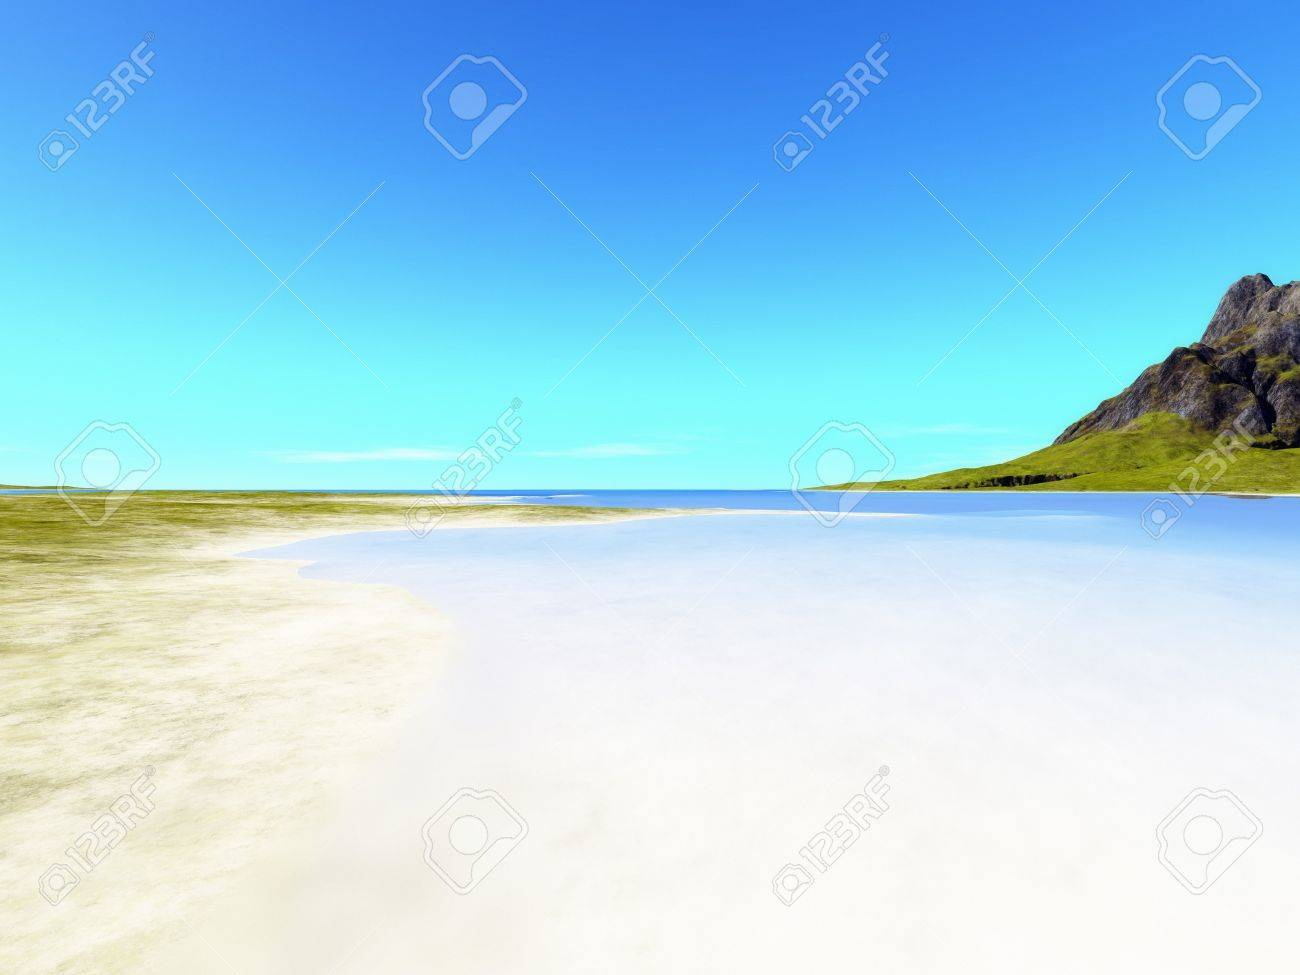 an image of a nice beach scenery background stock photo, picture and